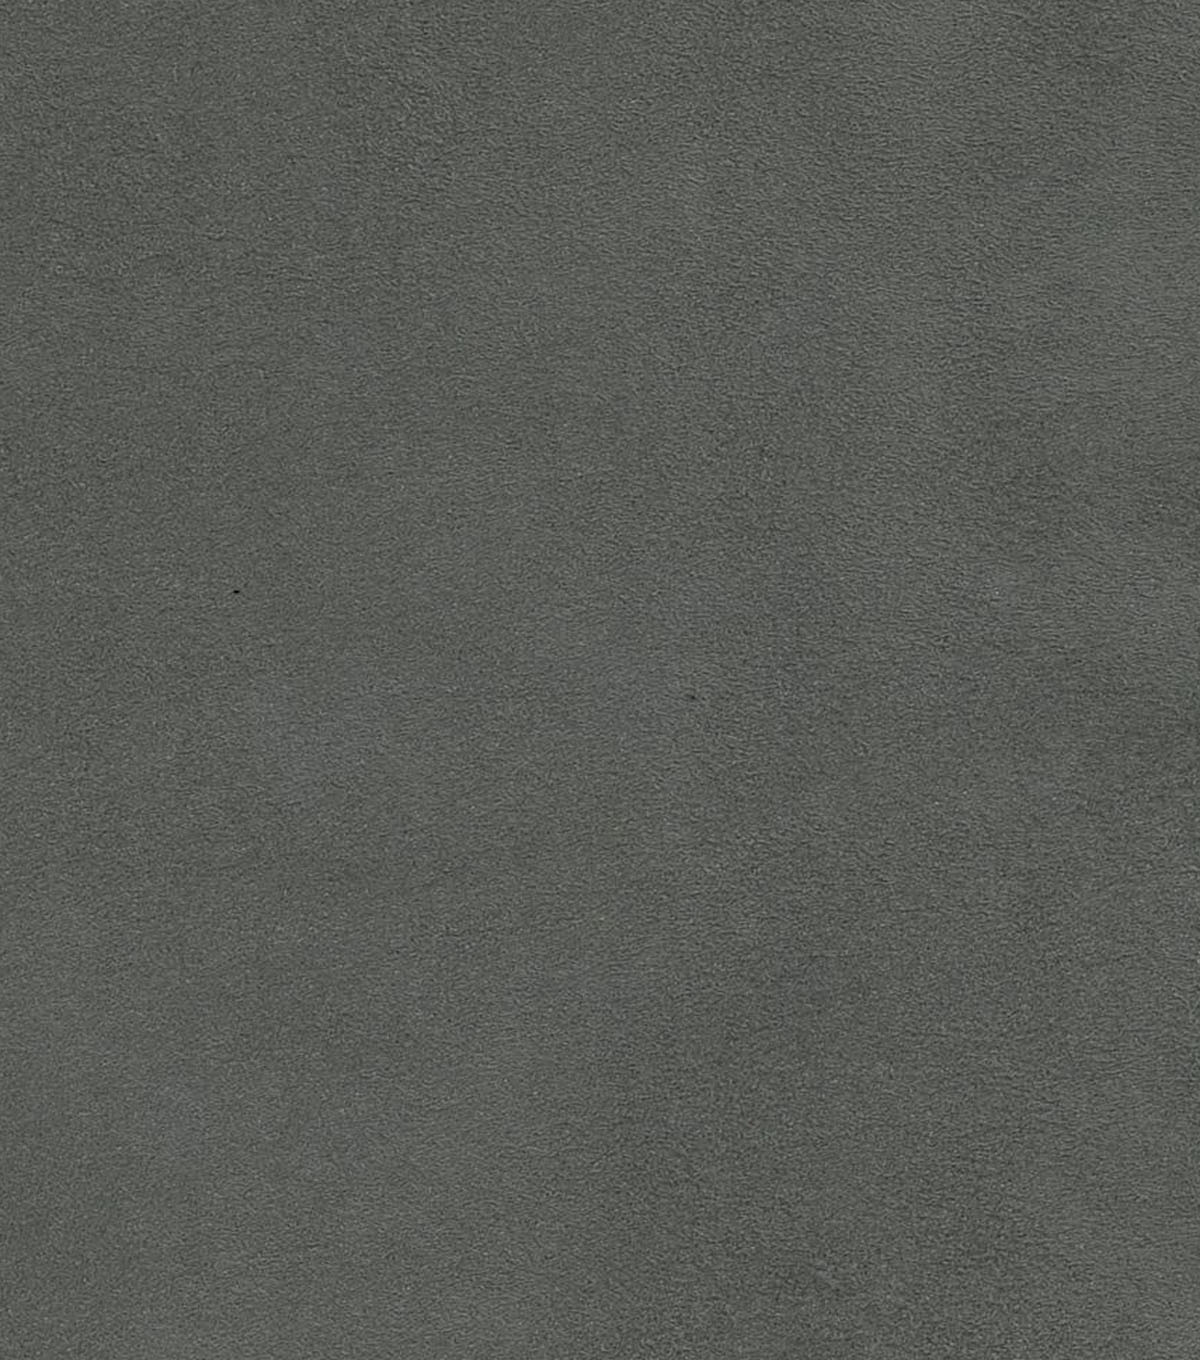 Dark Grey Living Room: Home Decor Solid Fabric-Signature Series Suede Dark Gray